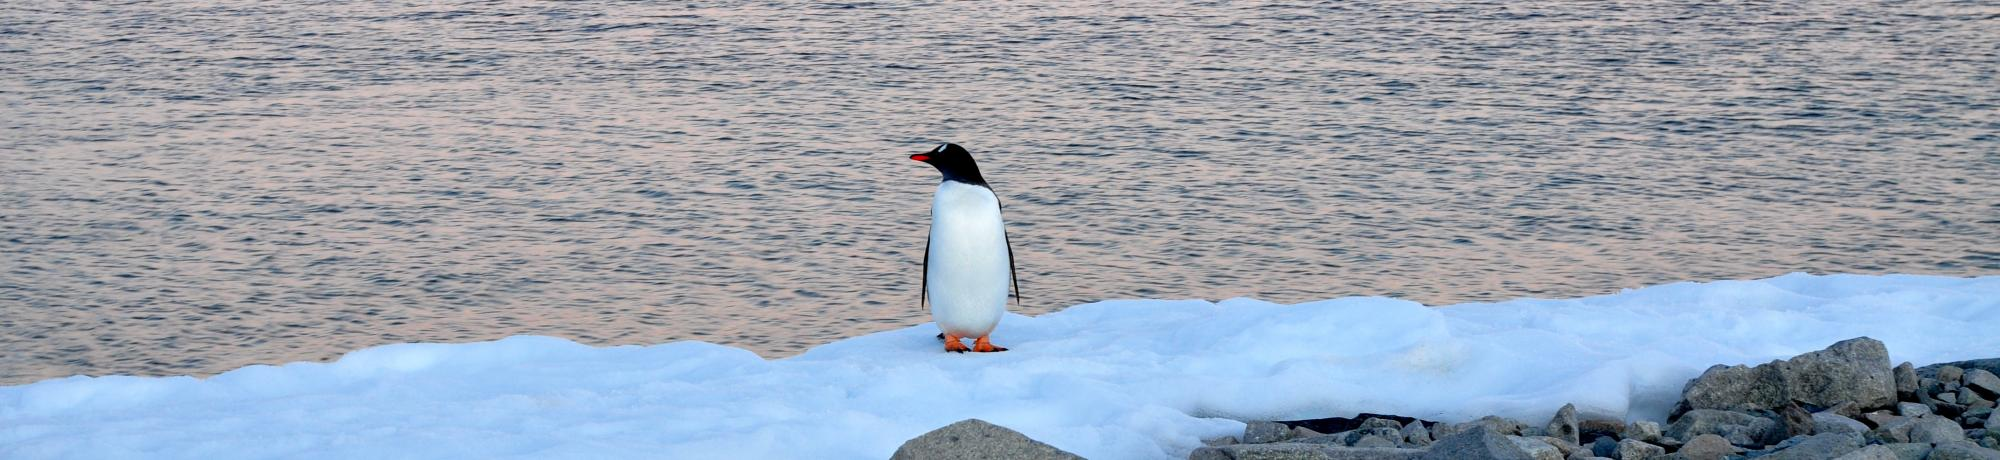 UC Davis Study Abroad, Seminars Abroad Antarctica, Ecology Program, Header Image, Cost Page